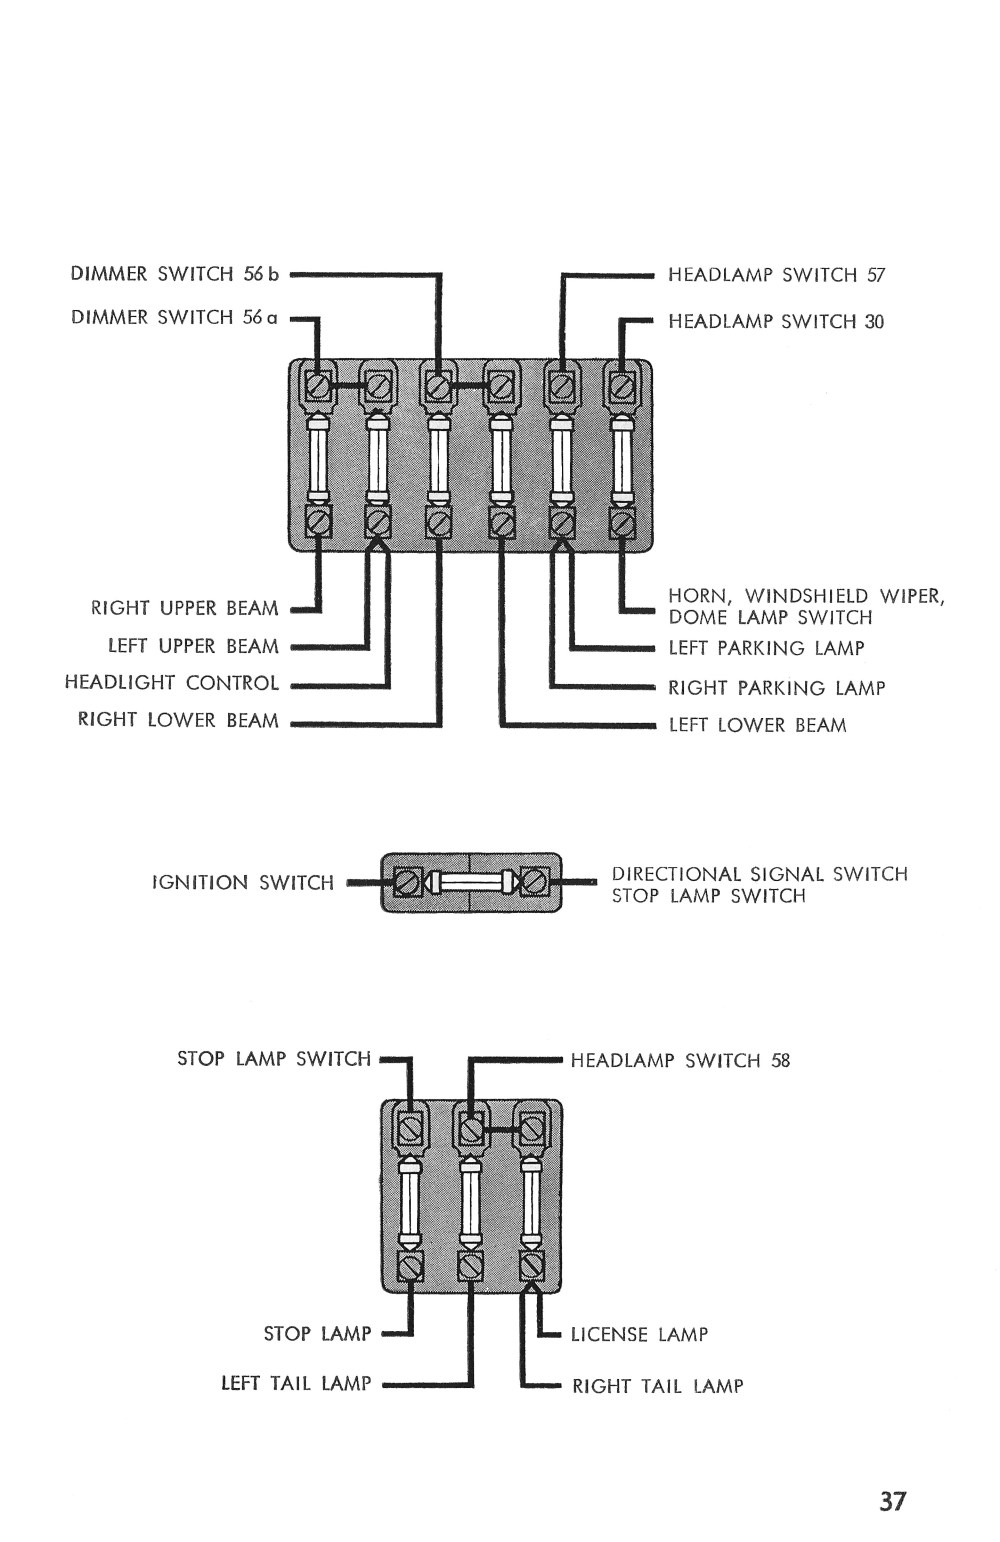 medium resolution of thesamba com type 1 wiring diagrams 2003 f250 fuse panel wiring diagram fuse panel wiring diagram